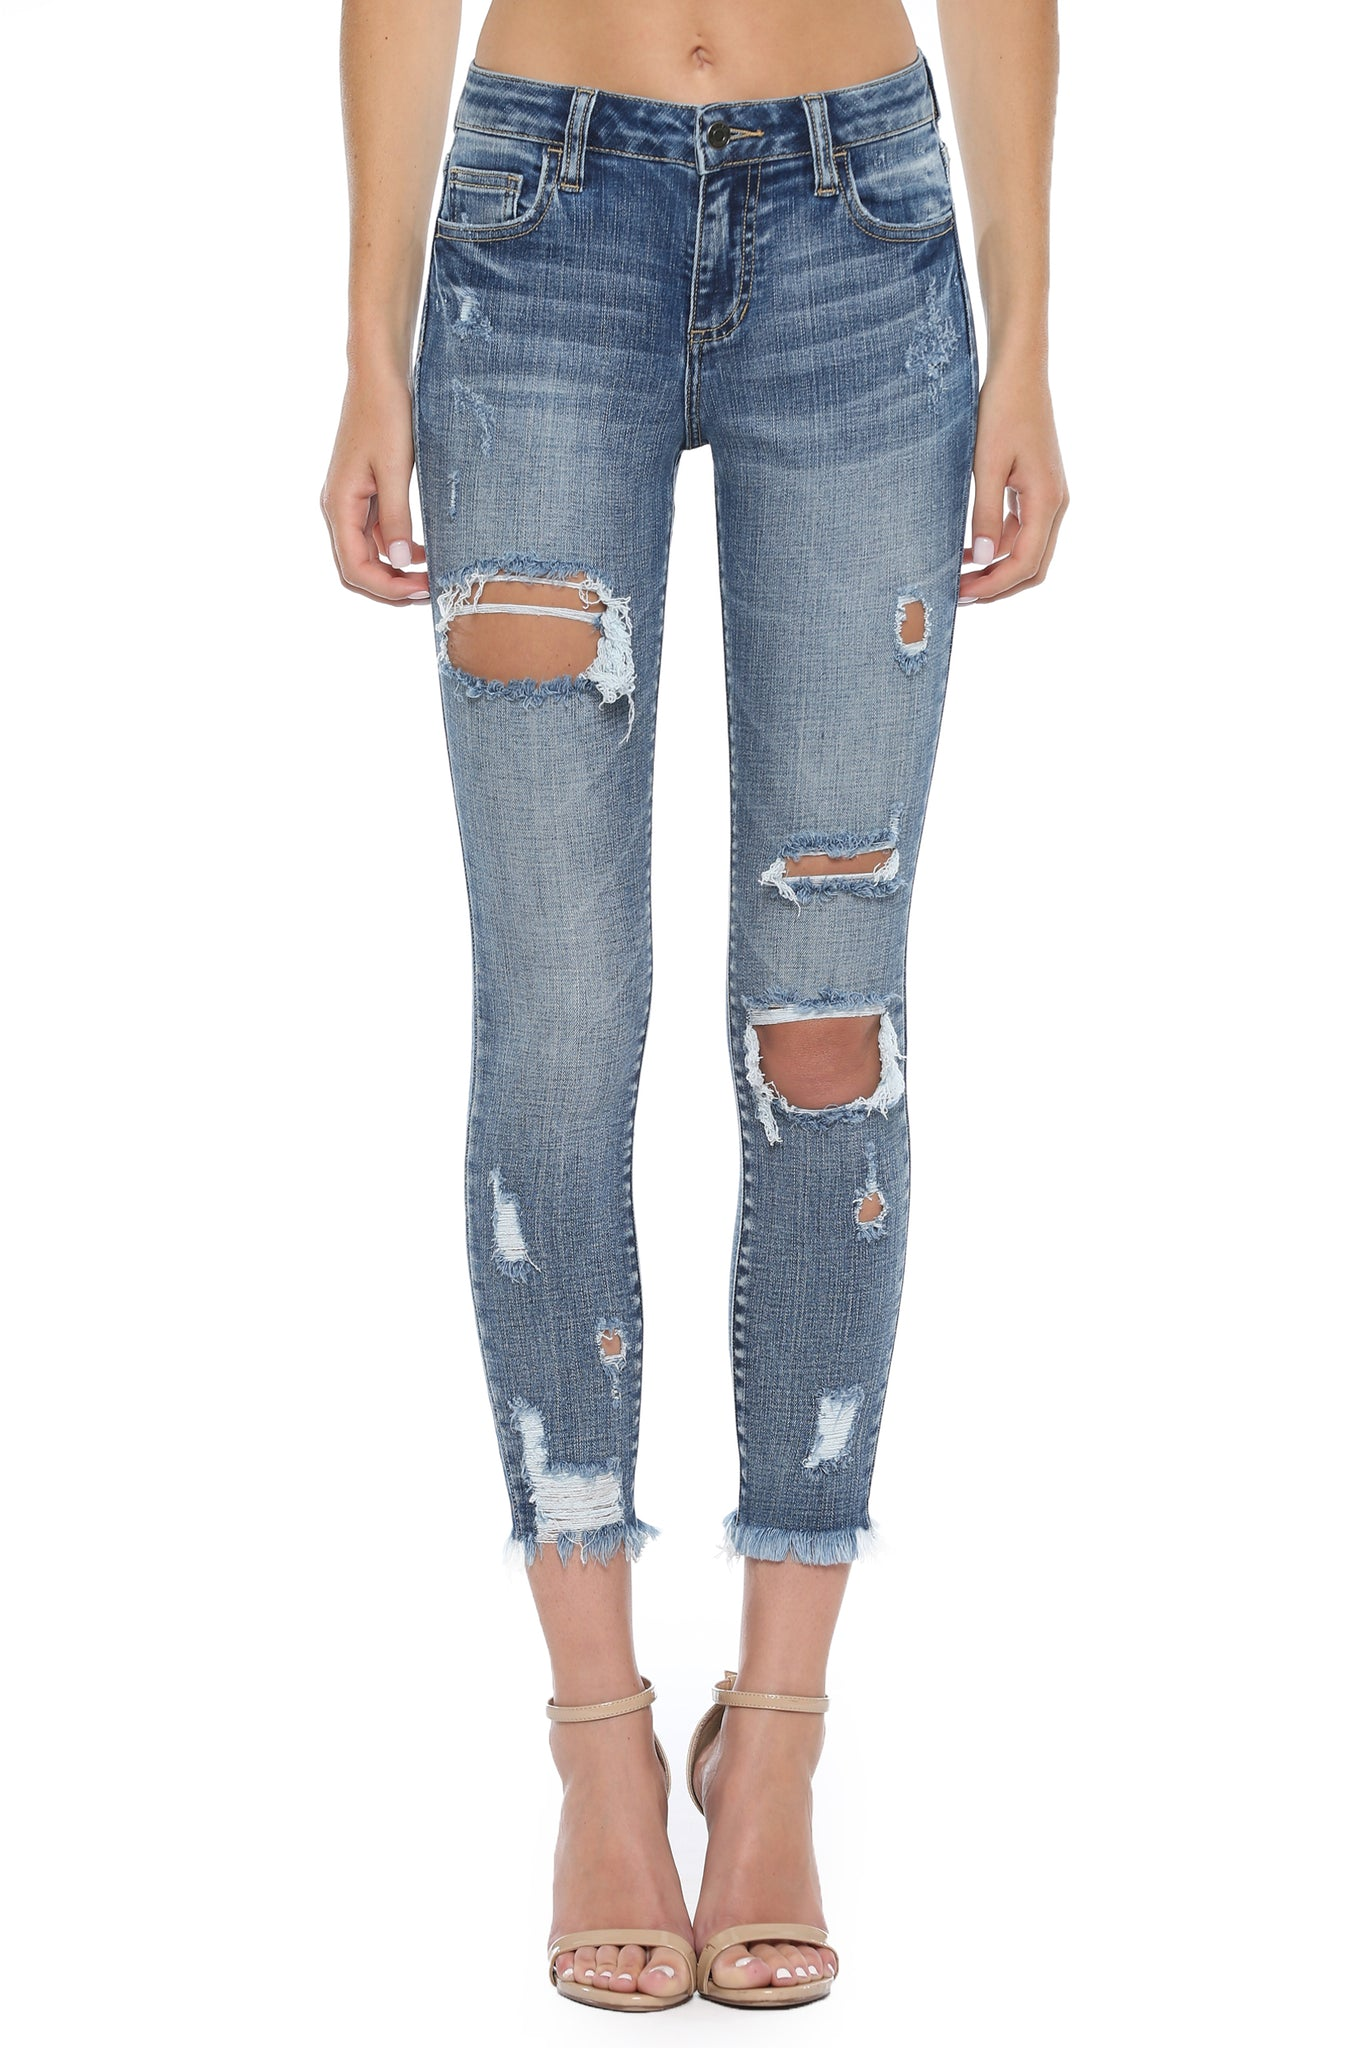 fab'rik - Monaco Distressed Crop Skinny Jean ProductImage-13876812120122